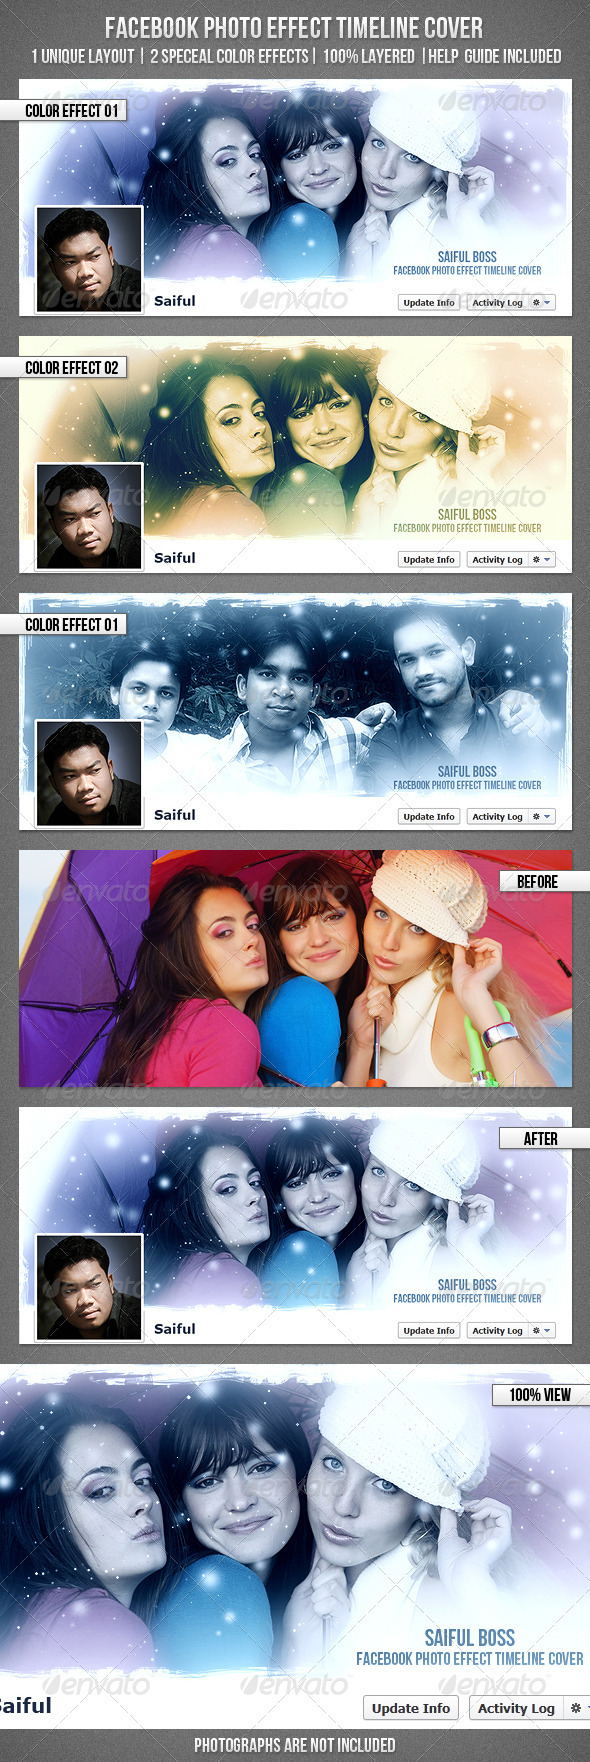 GraphicRiver FB Photo Effect Timeline Cover 3448572